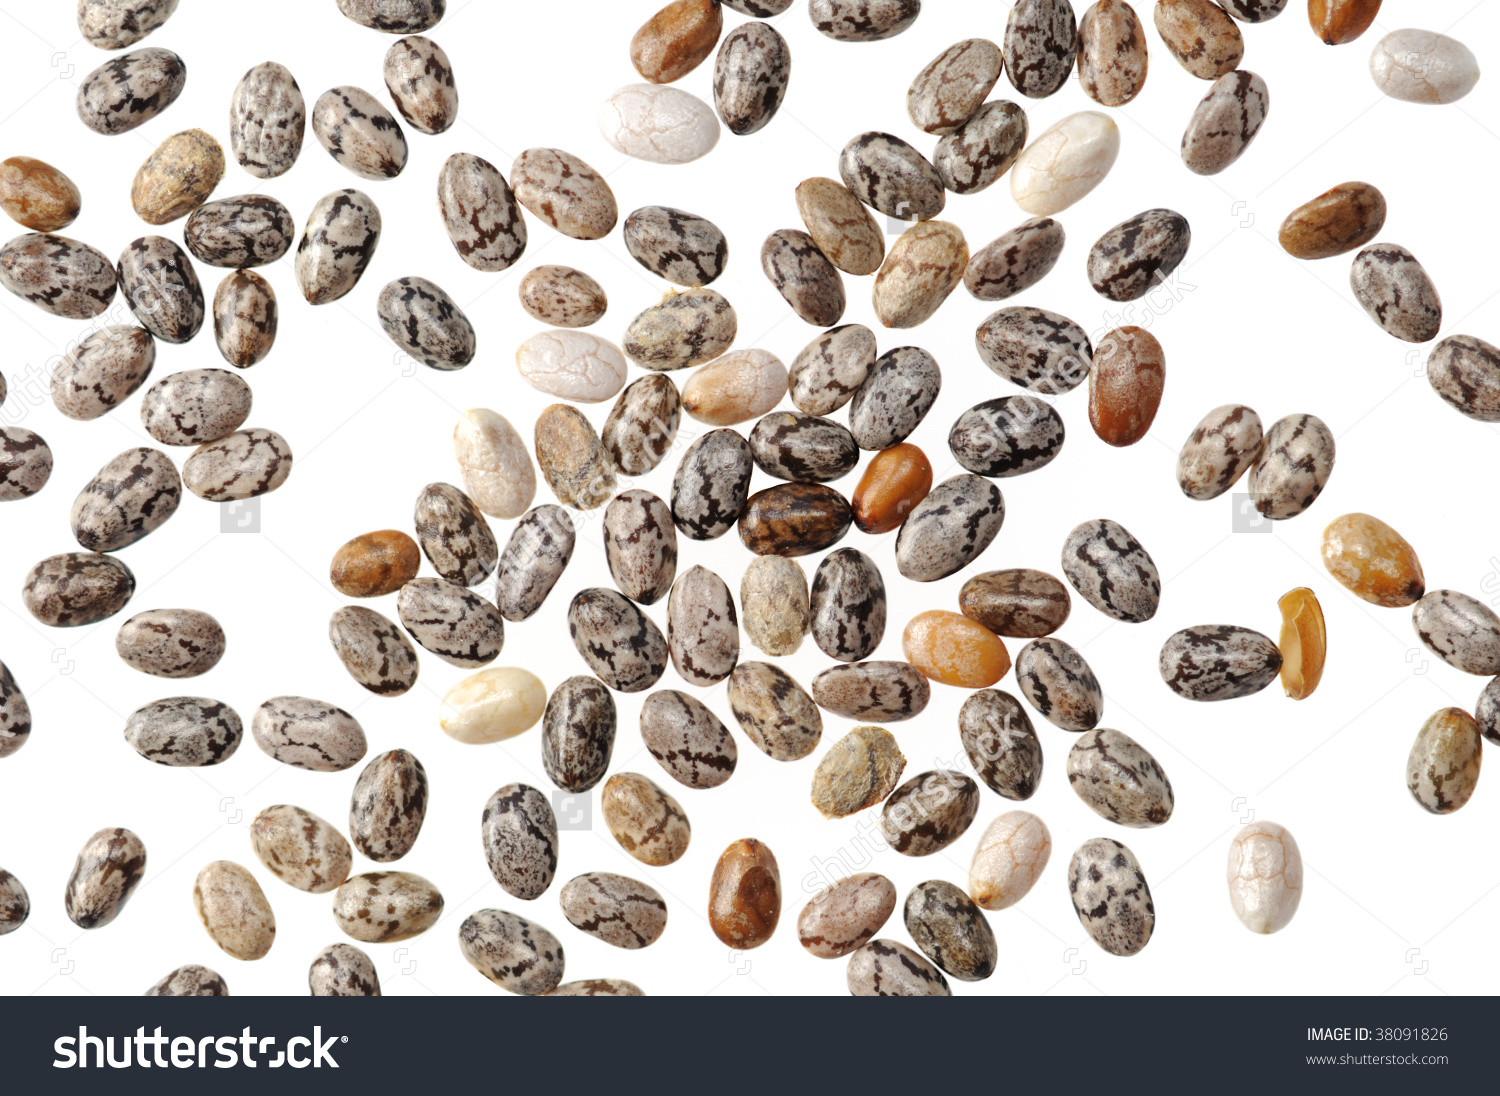 Chia Seeds Stock Photo 38091826.